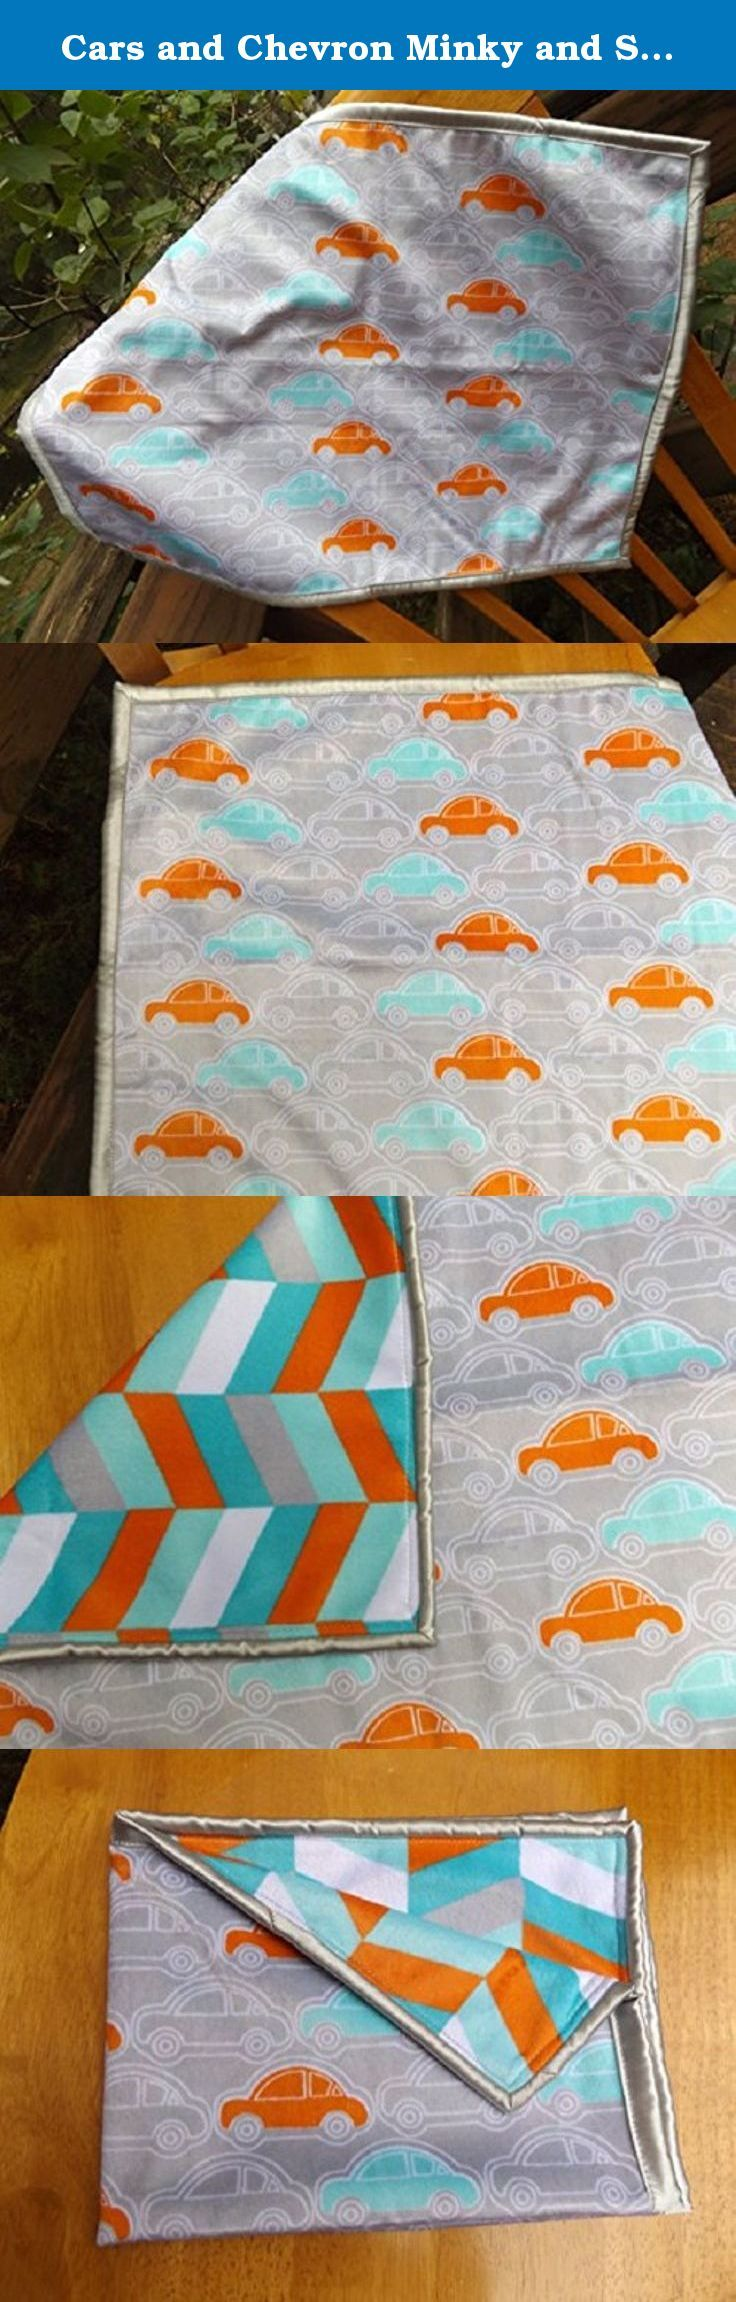 Cars and Chevron Minky and Satin Lovey Blanket, Orange, Aqua and Silver Security Blanket, Double Layer Stroller or Carseat Blanket, 2 Layer. The front of this blanket is a soft and cozy low nap velour like minky fabric in an orange, aqua and silver car print. The back of of blanket is a layer of the same style of minky fabric in an orange, aqua and silver chevron This blanket is perfect as a comforting security blanket, and also works great as a bedtime lovey blanket. Superior quality…